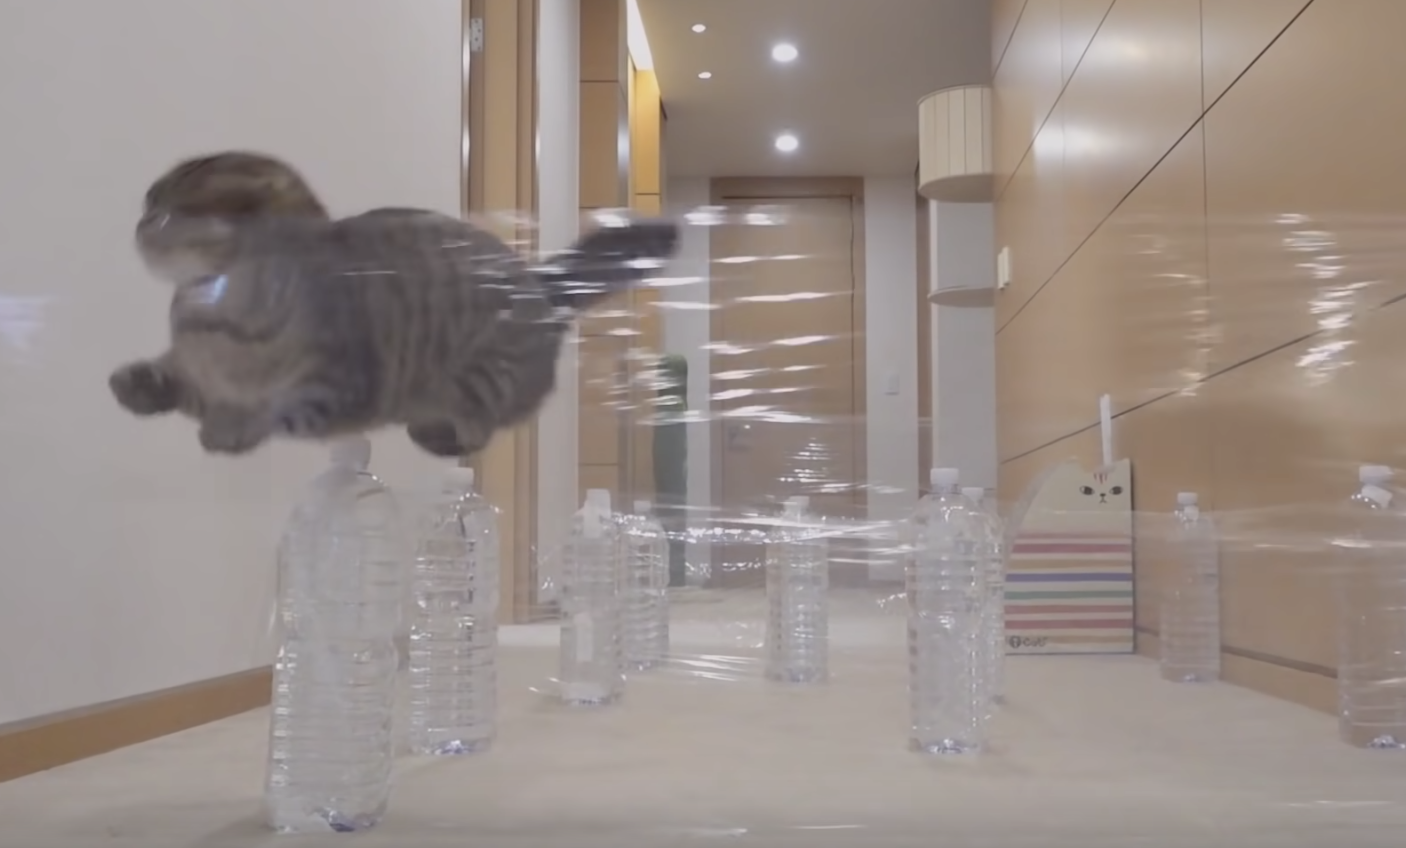 Please Watch These Cats Find ically Innovative Ways To Make Their Way Through An Invisible Maze